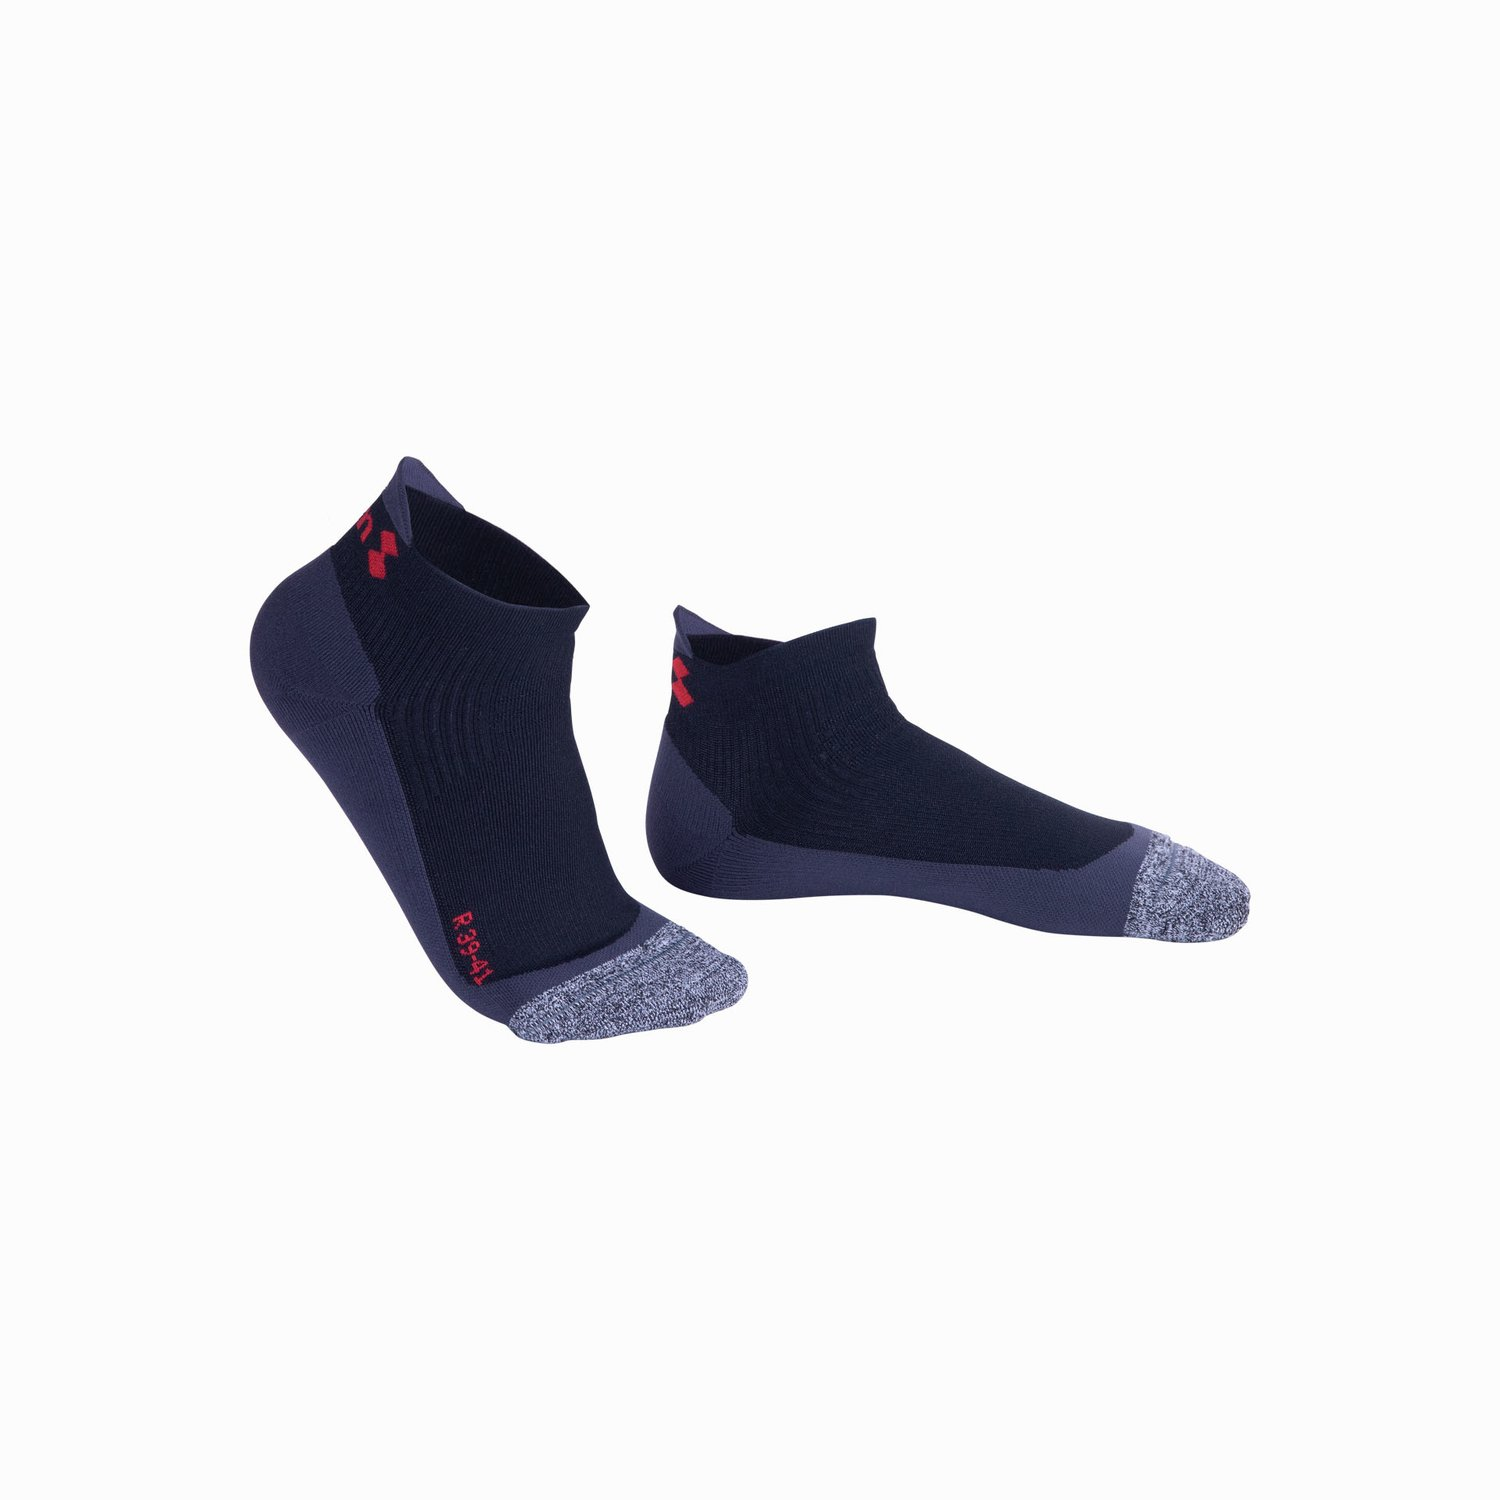 WIN-D BREEZE LOW CUT SOCKS - Black